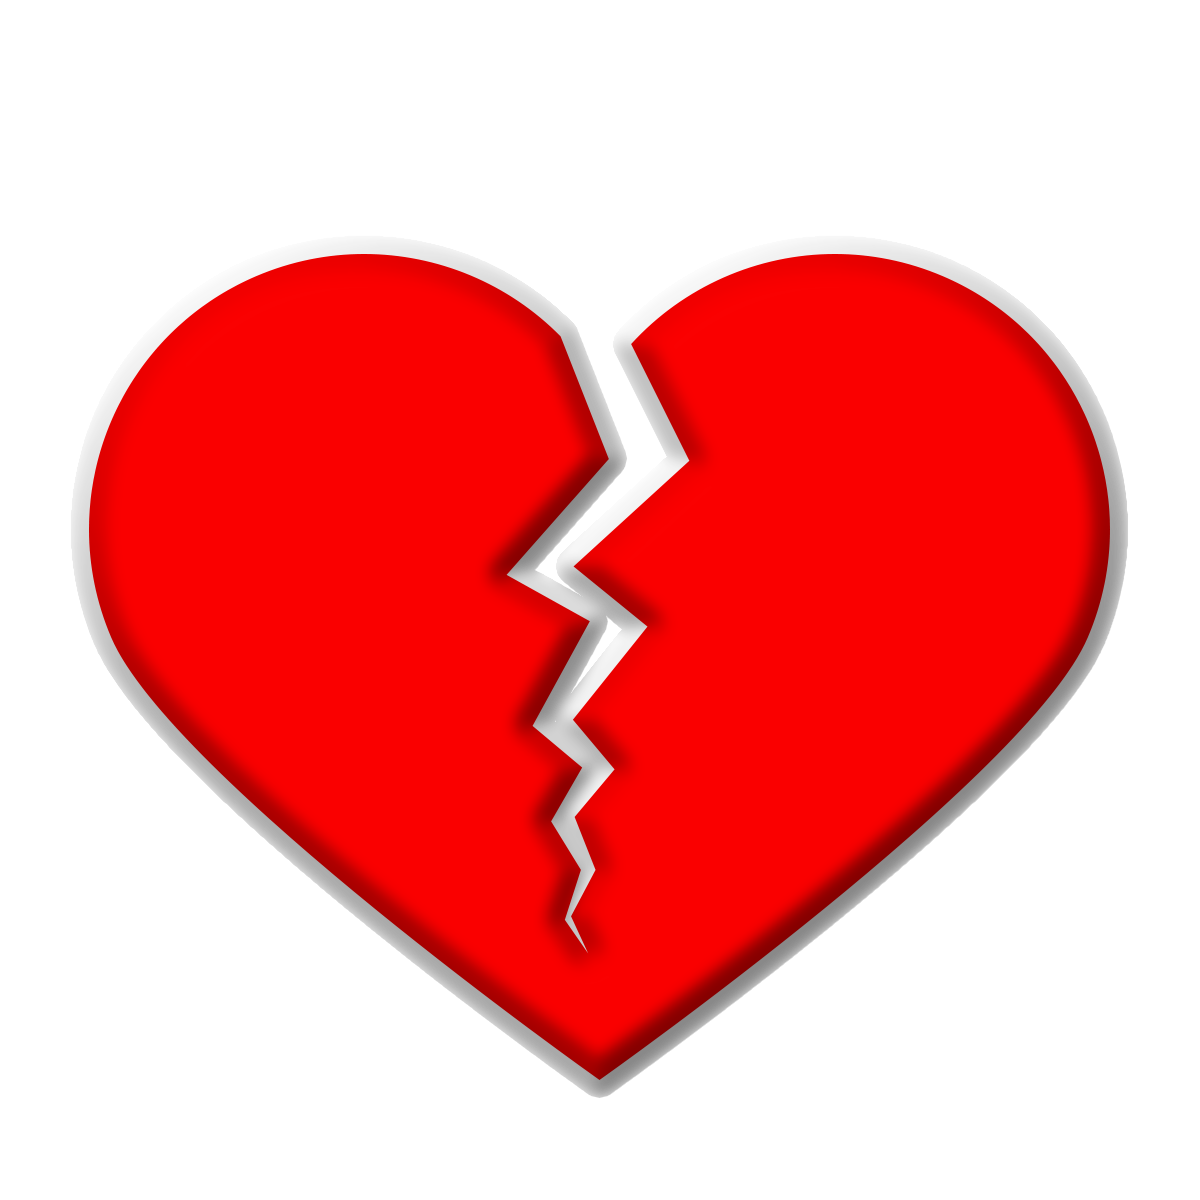 Free Download High Quality Broken Heart Png Transparent Background This Is Vector Lovely 3d Png Red Color Broken H Love Png Broken Heart Transparent Background